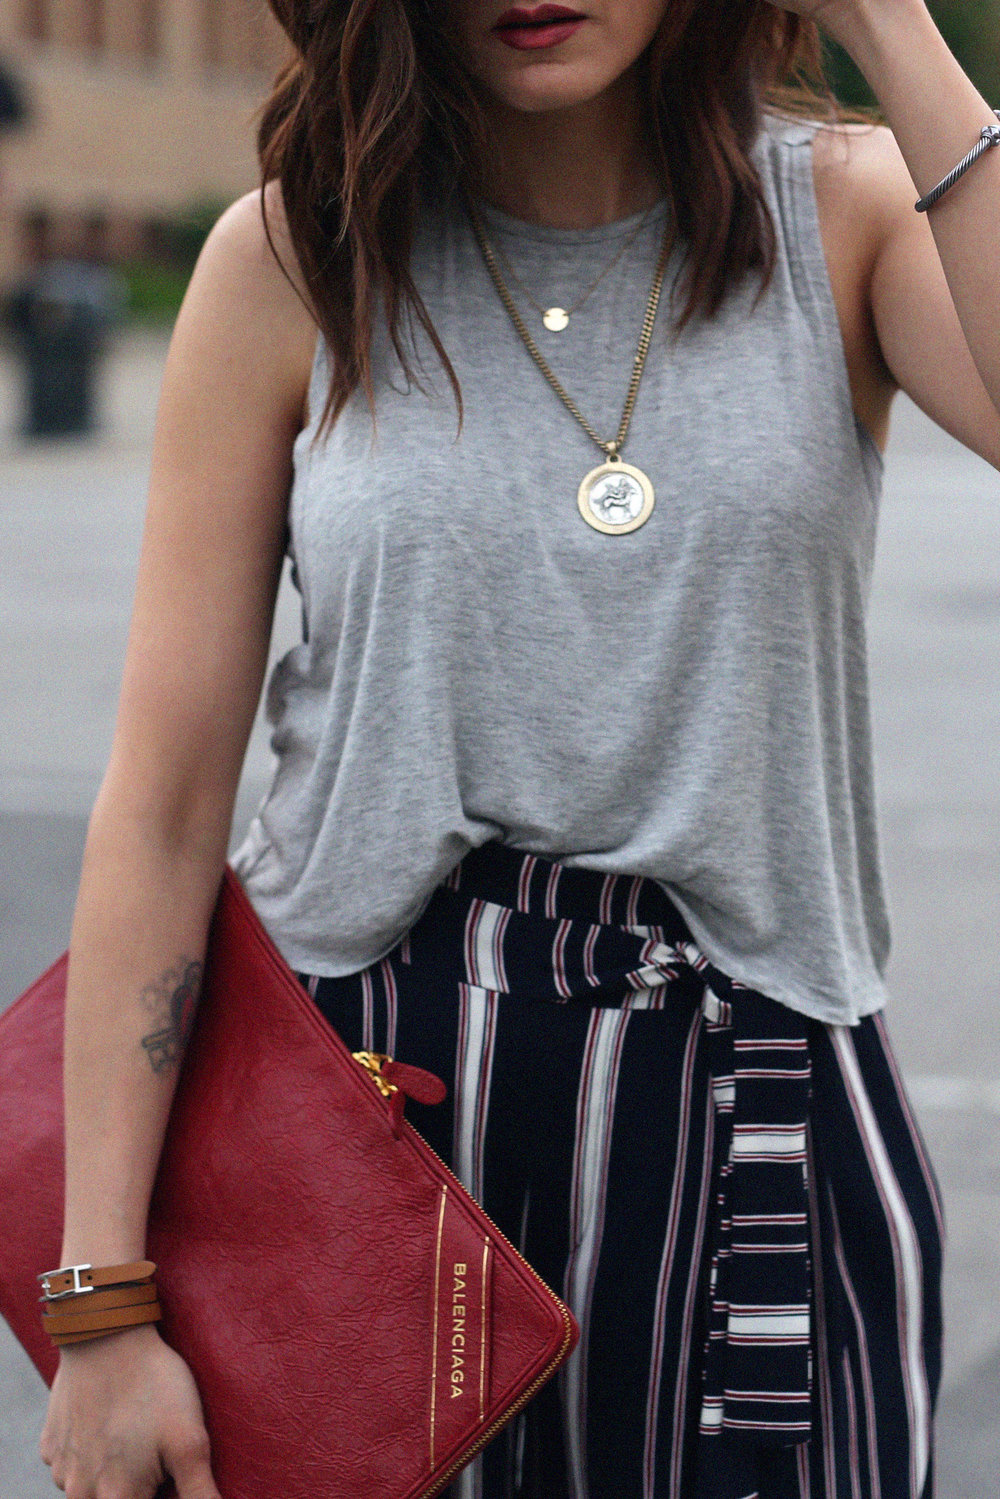 red balenciaga clutch, document holder, checkered vans and striped pants - street style_2129.jpg